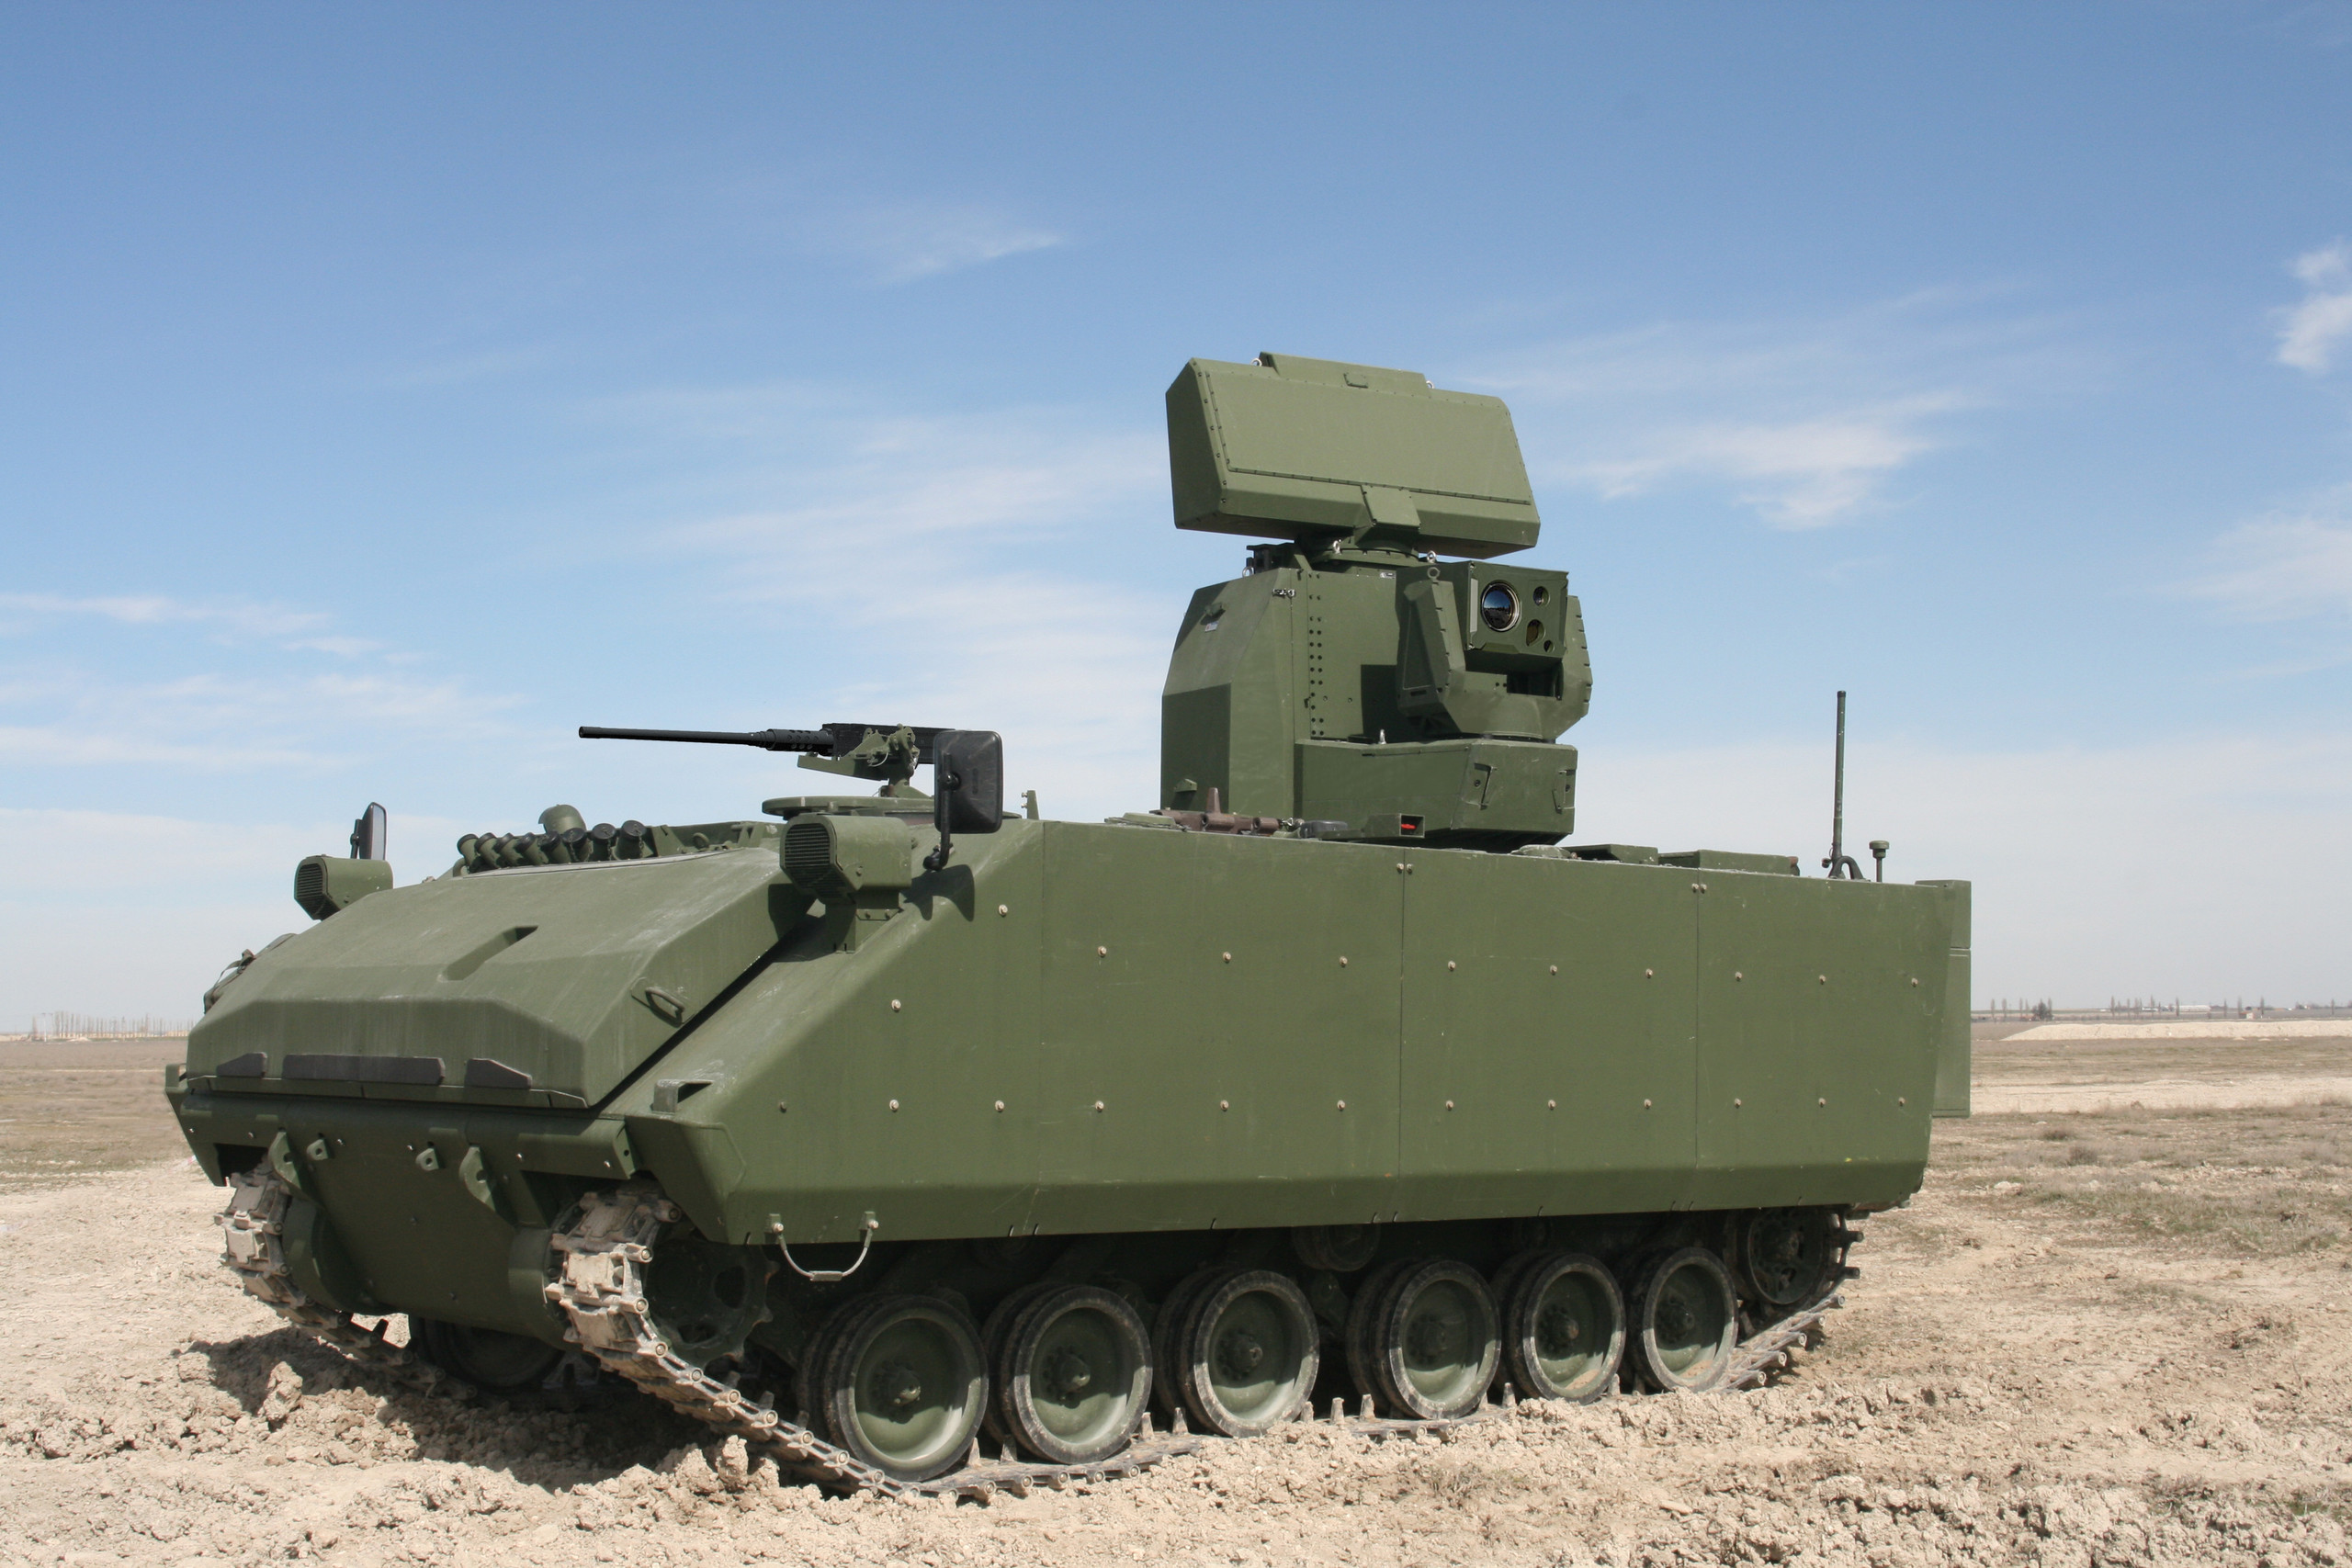 Turkish Ground Forces equipment E3PG8z